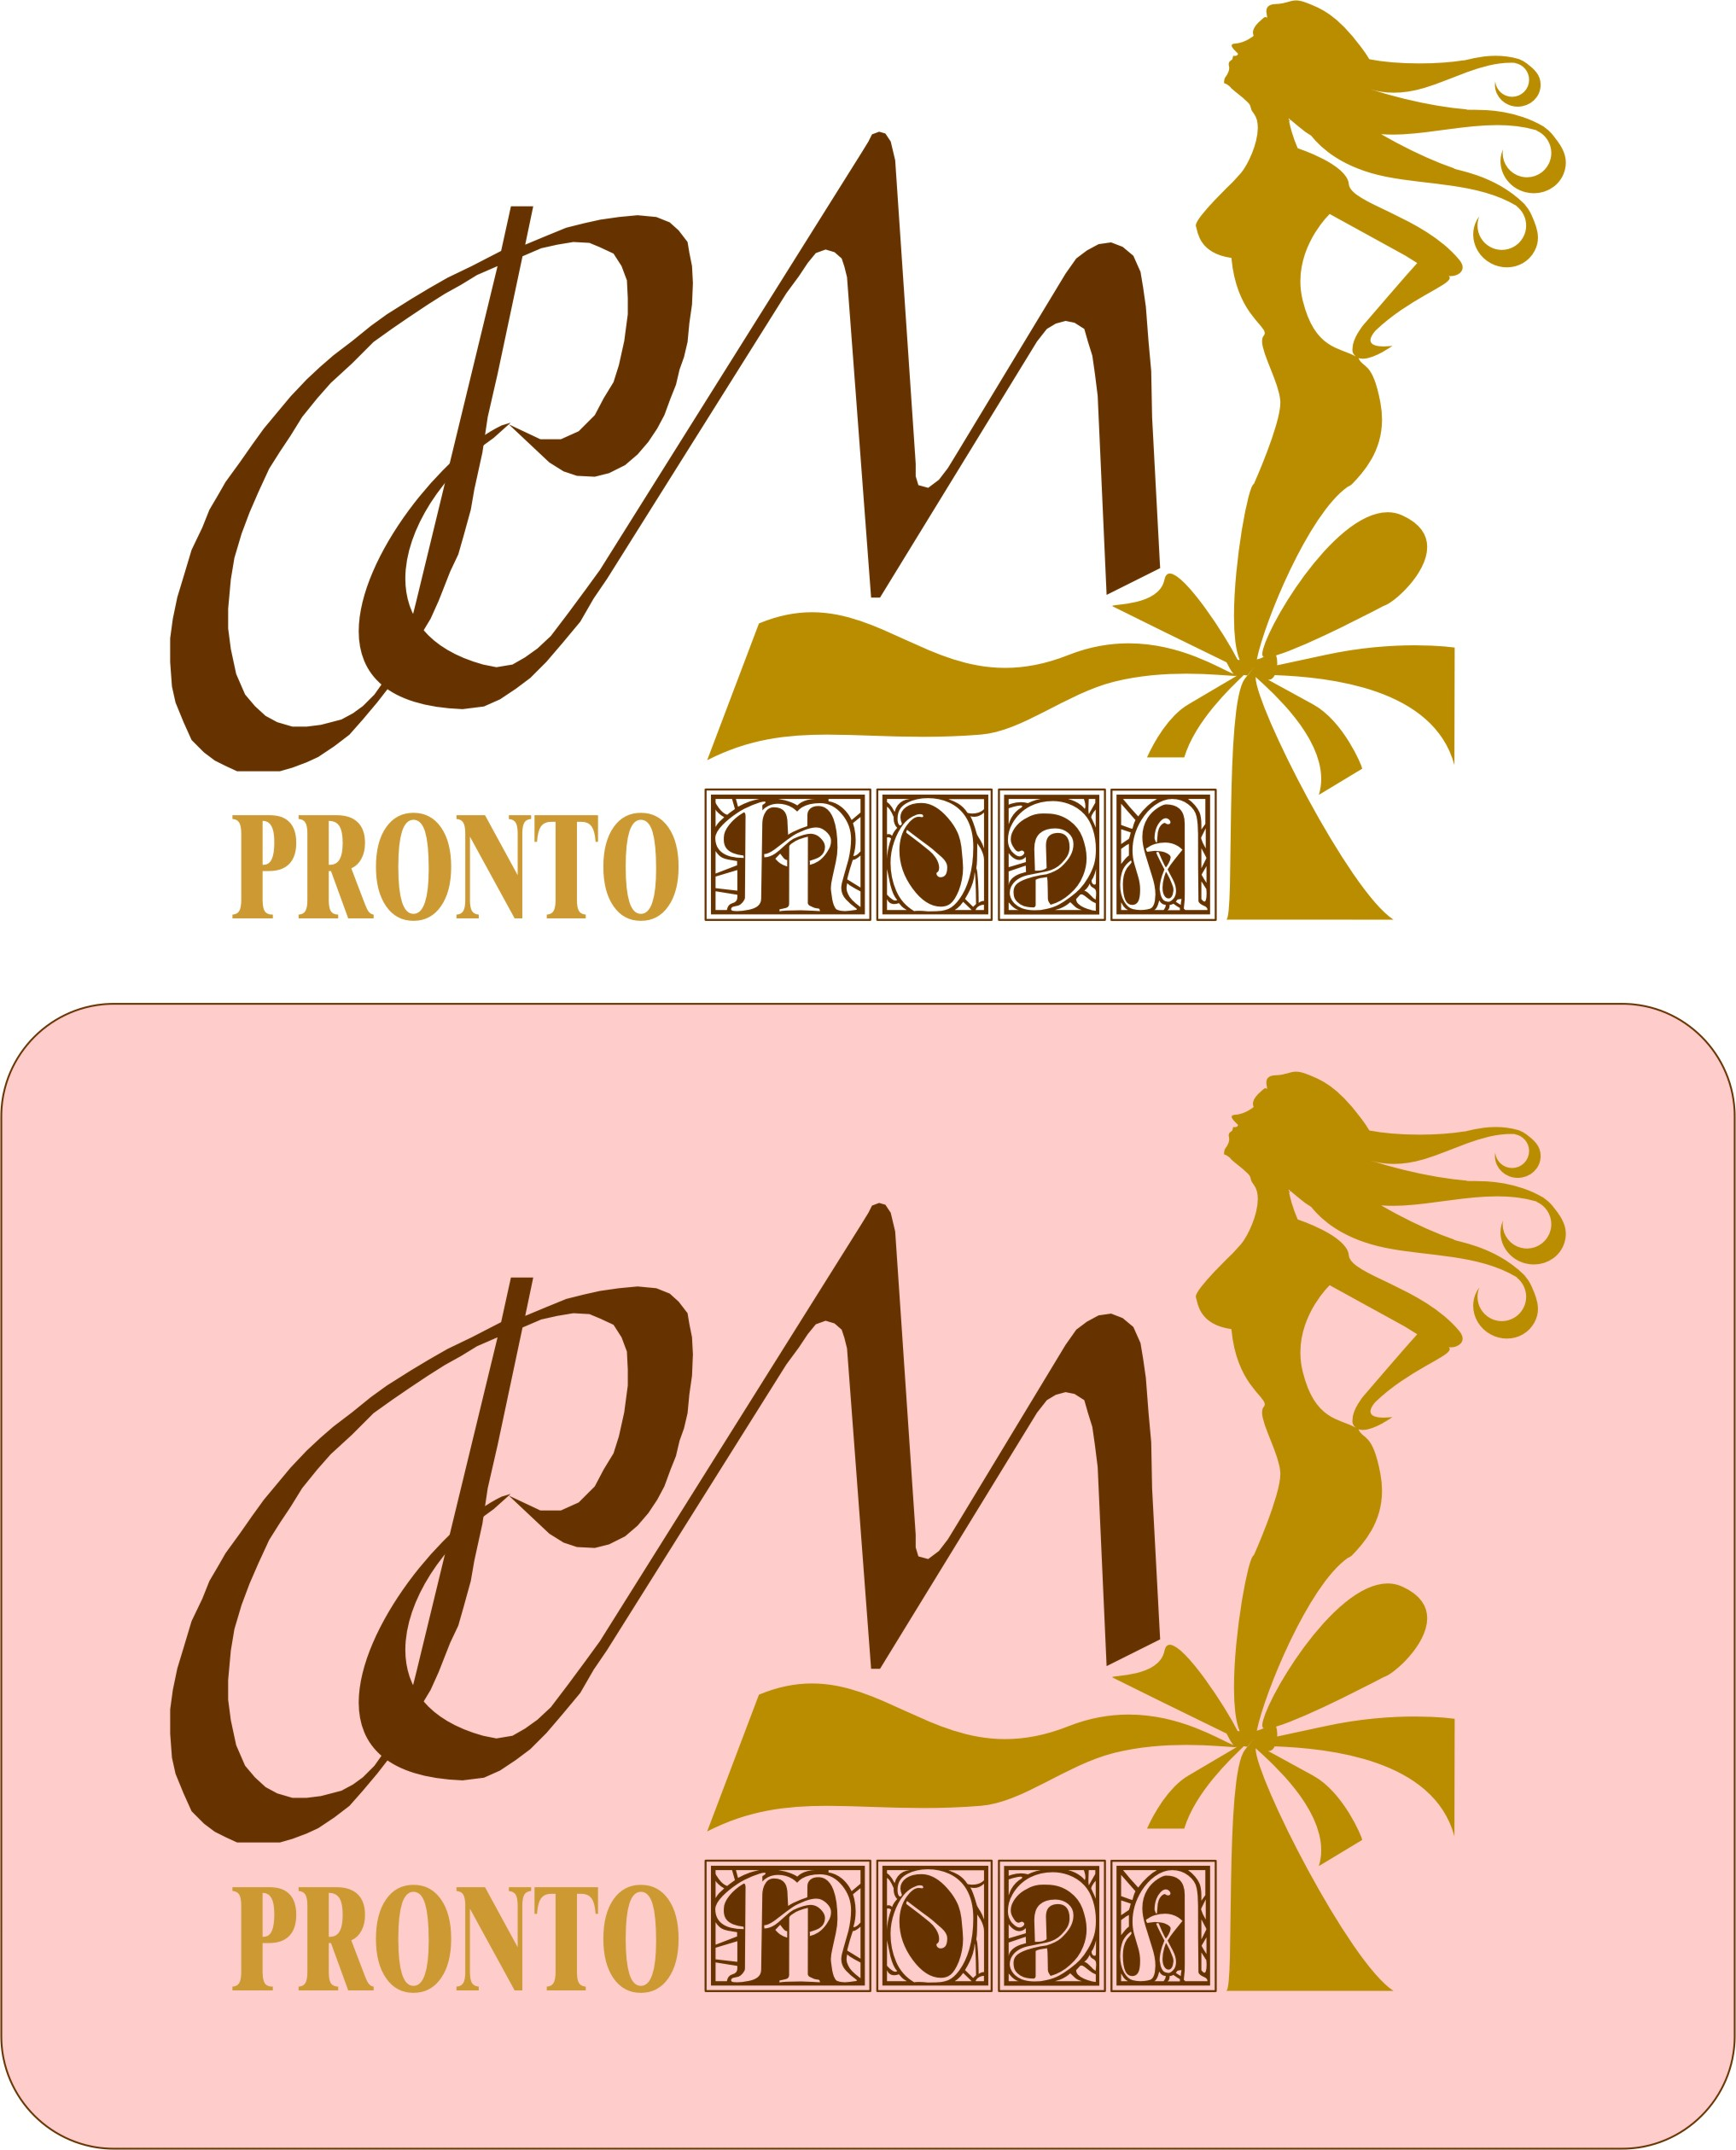 Logo Design by Korsunov Oleg - Entry No. 60 in the Logo Design Contest Captivating Logo Design for Pronto moda.